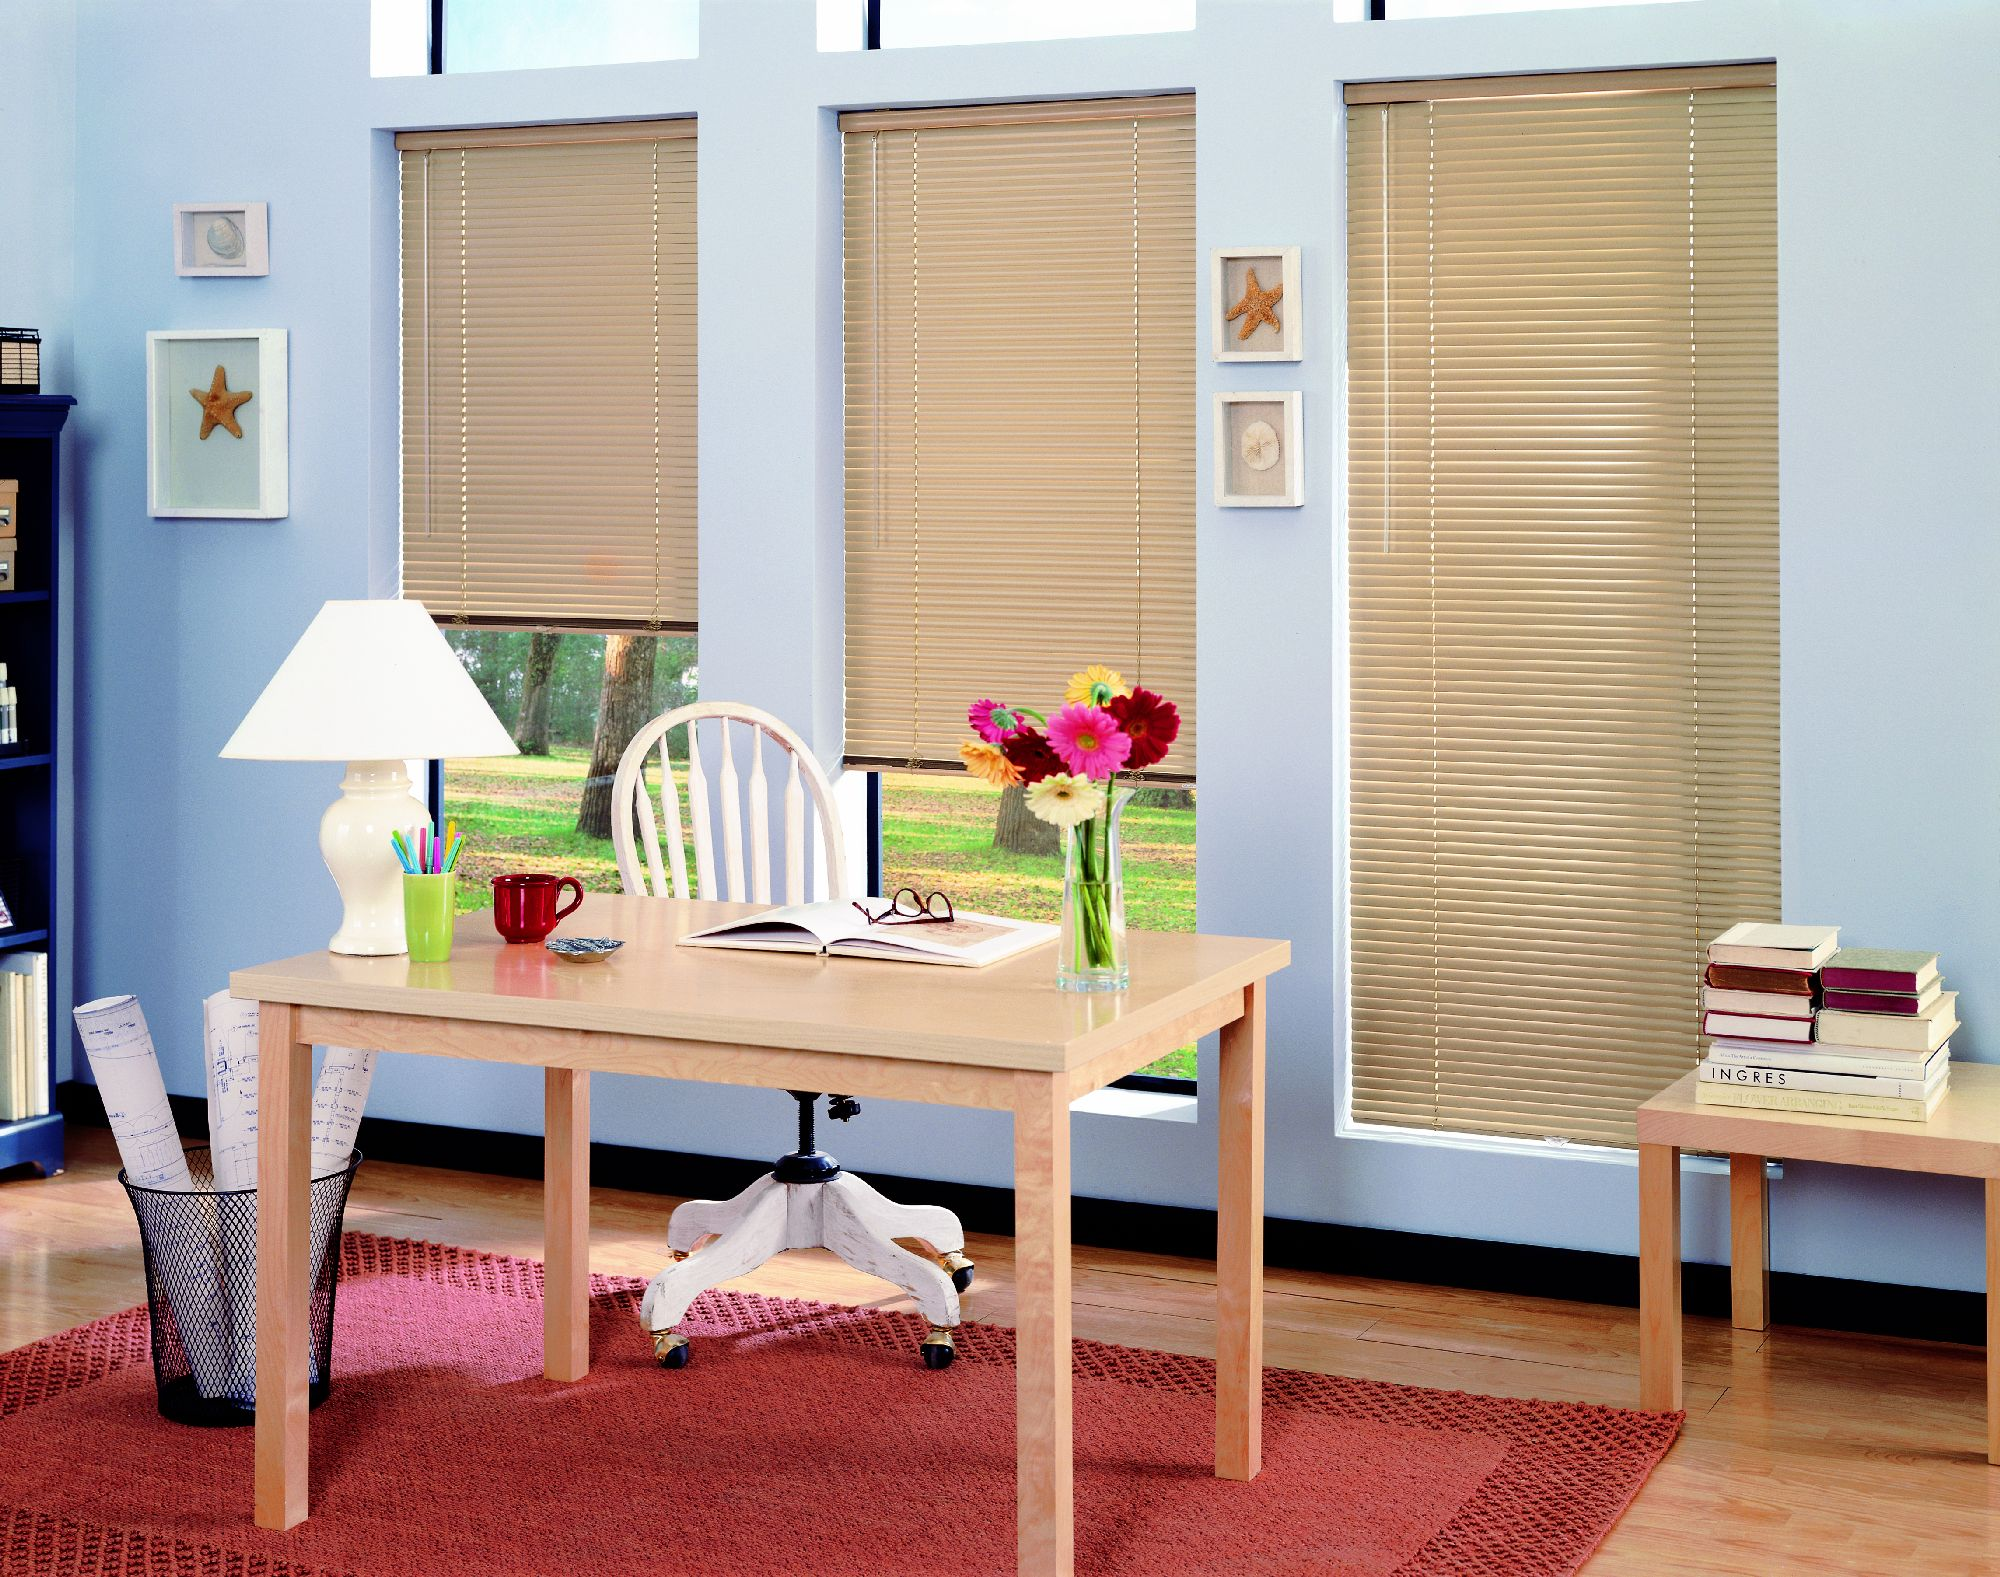 h so blinds from window products blind mice venetian lutron coverings aluminum hi mini